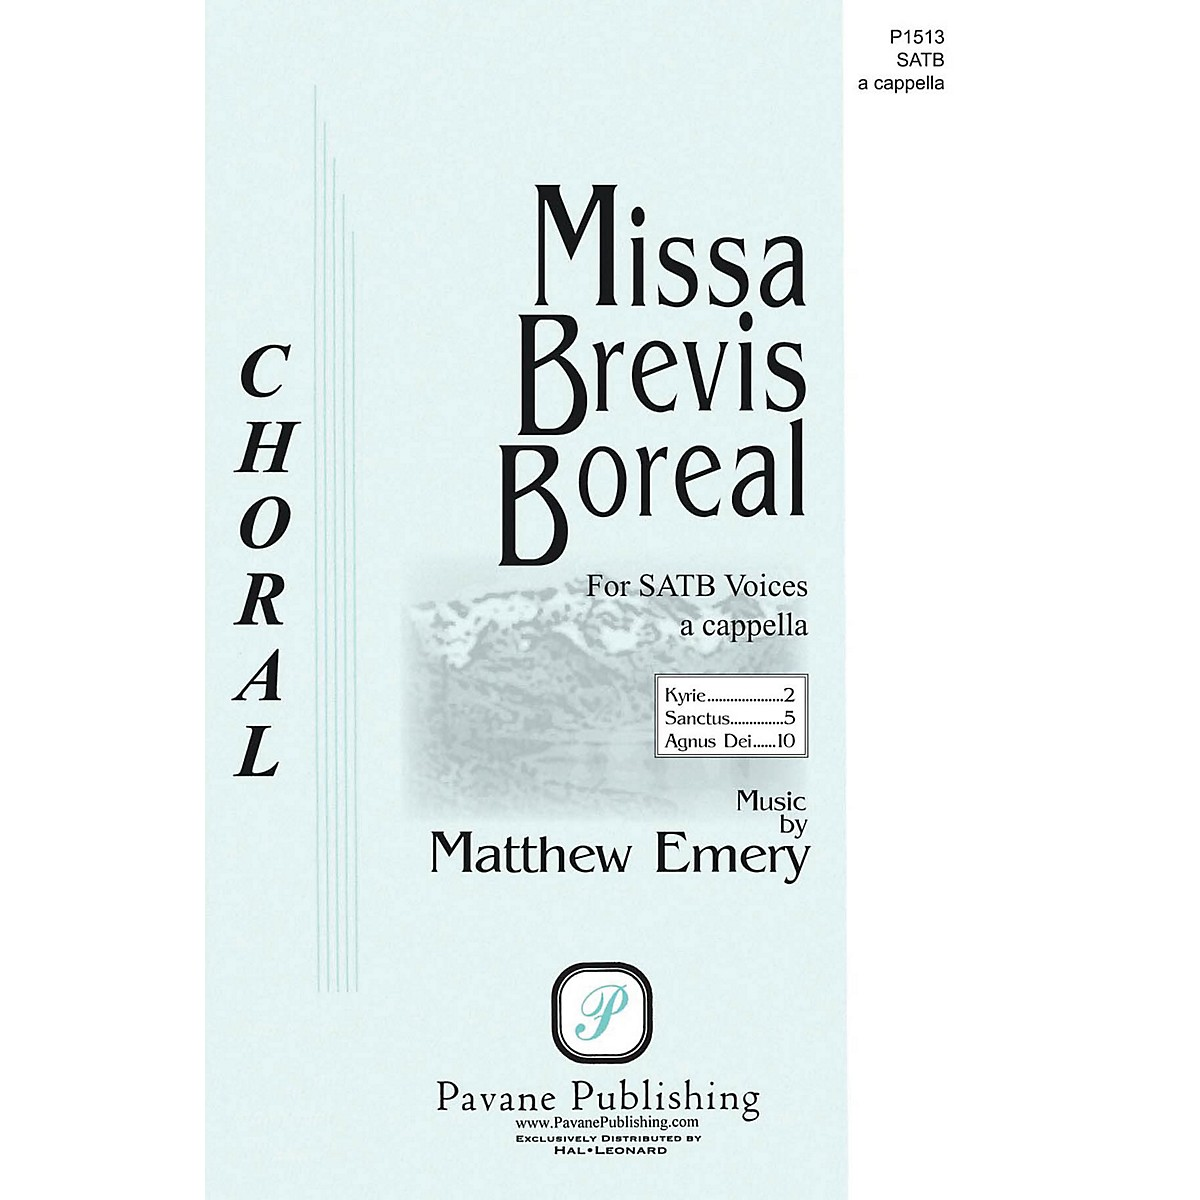 Pavane Missa Brevis Boreal SATB a cappella composed by Matthew Emery